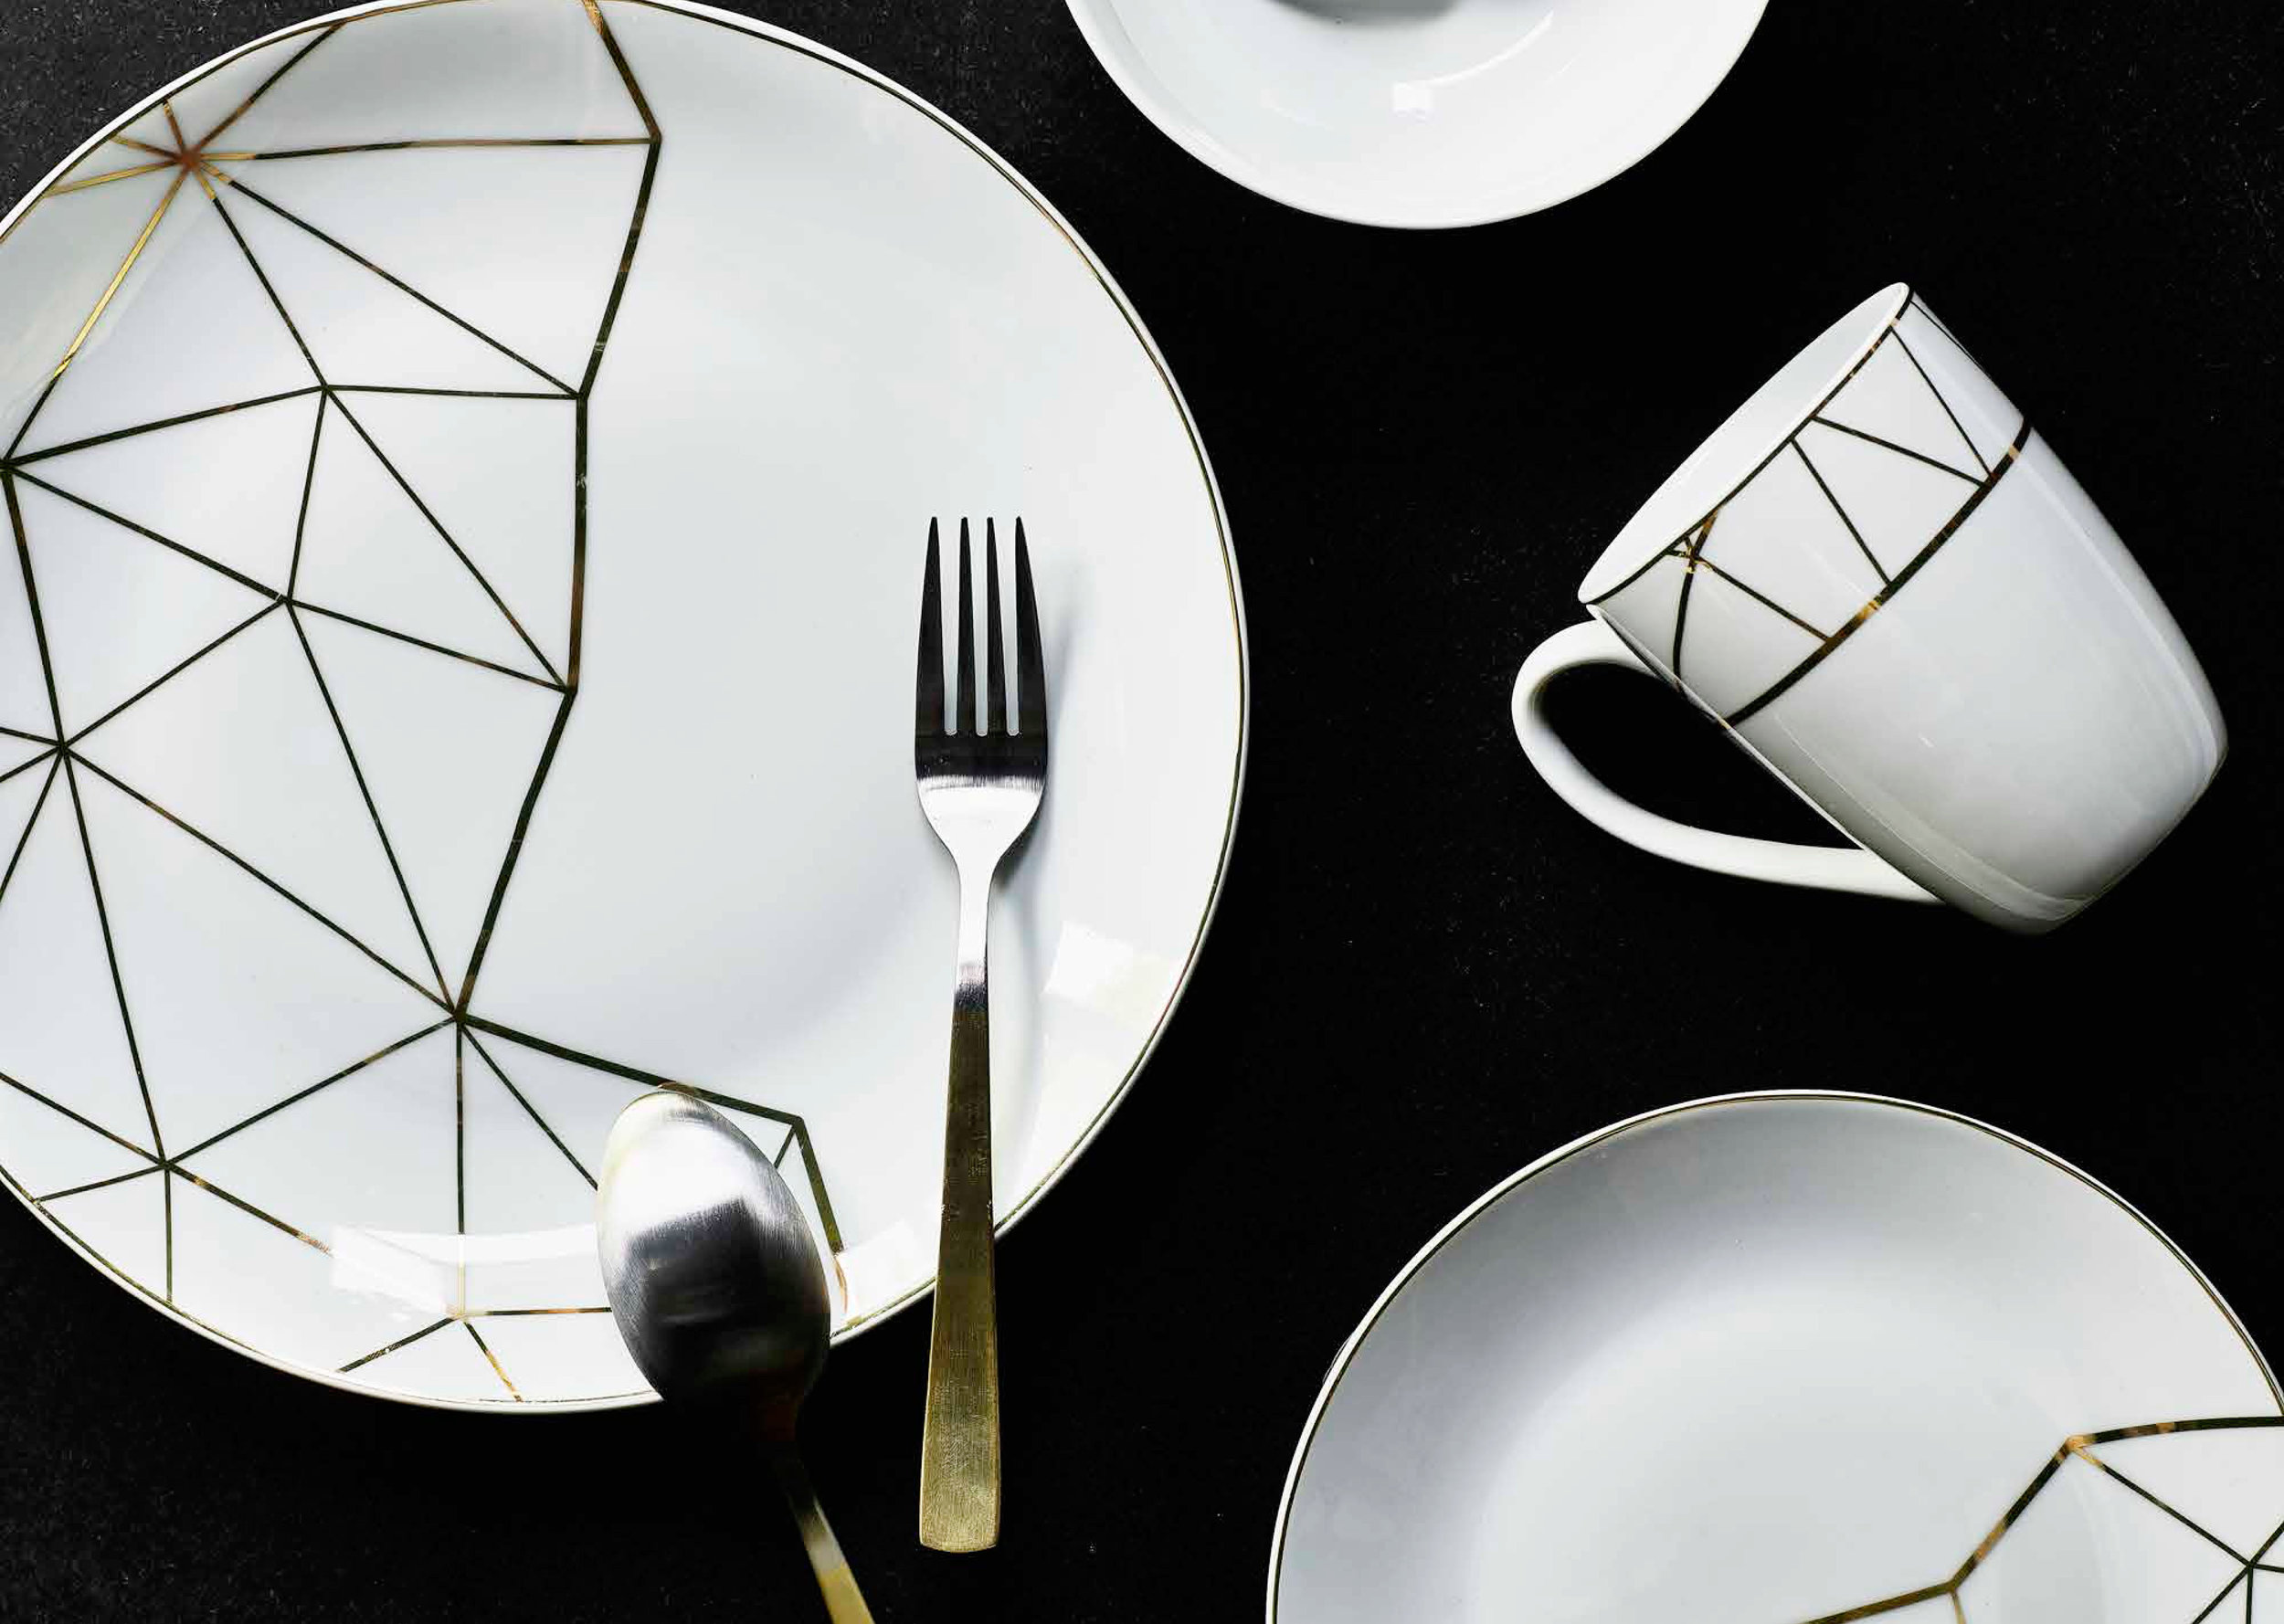 Heart of House, 8 PC Metallic Geometric Dinner Set 7074156, £24.99. The Collection, 16 PC 2 Tone Cutlery Set 7115204, £24.99, all  Argos